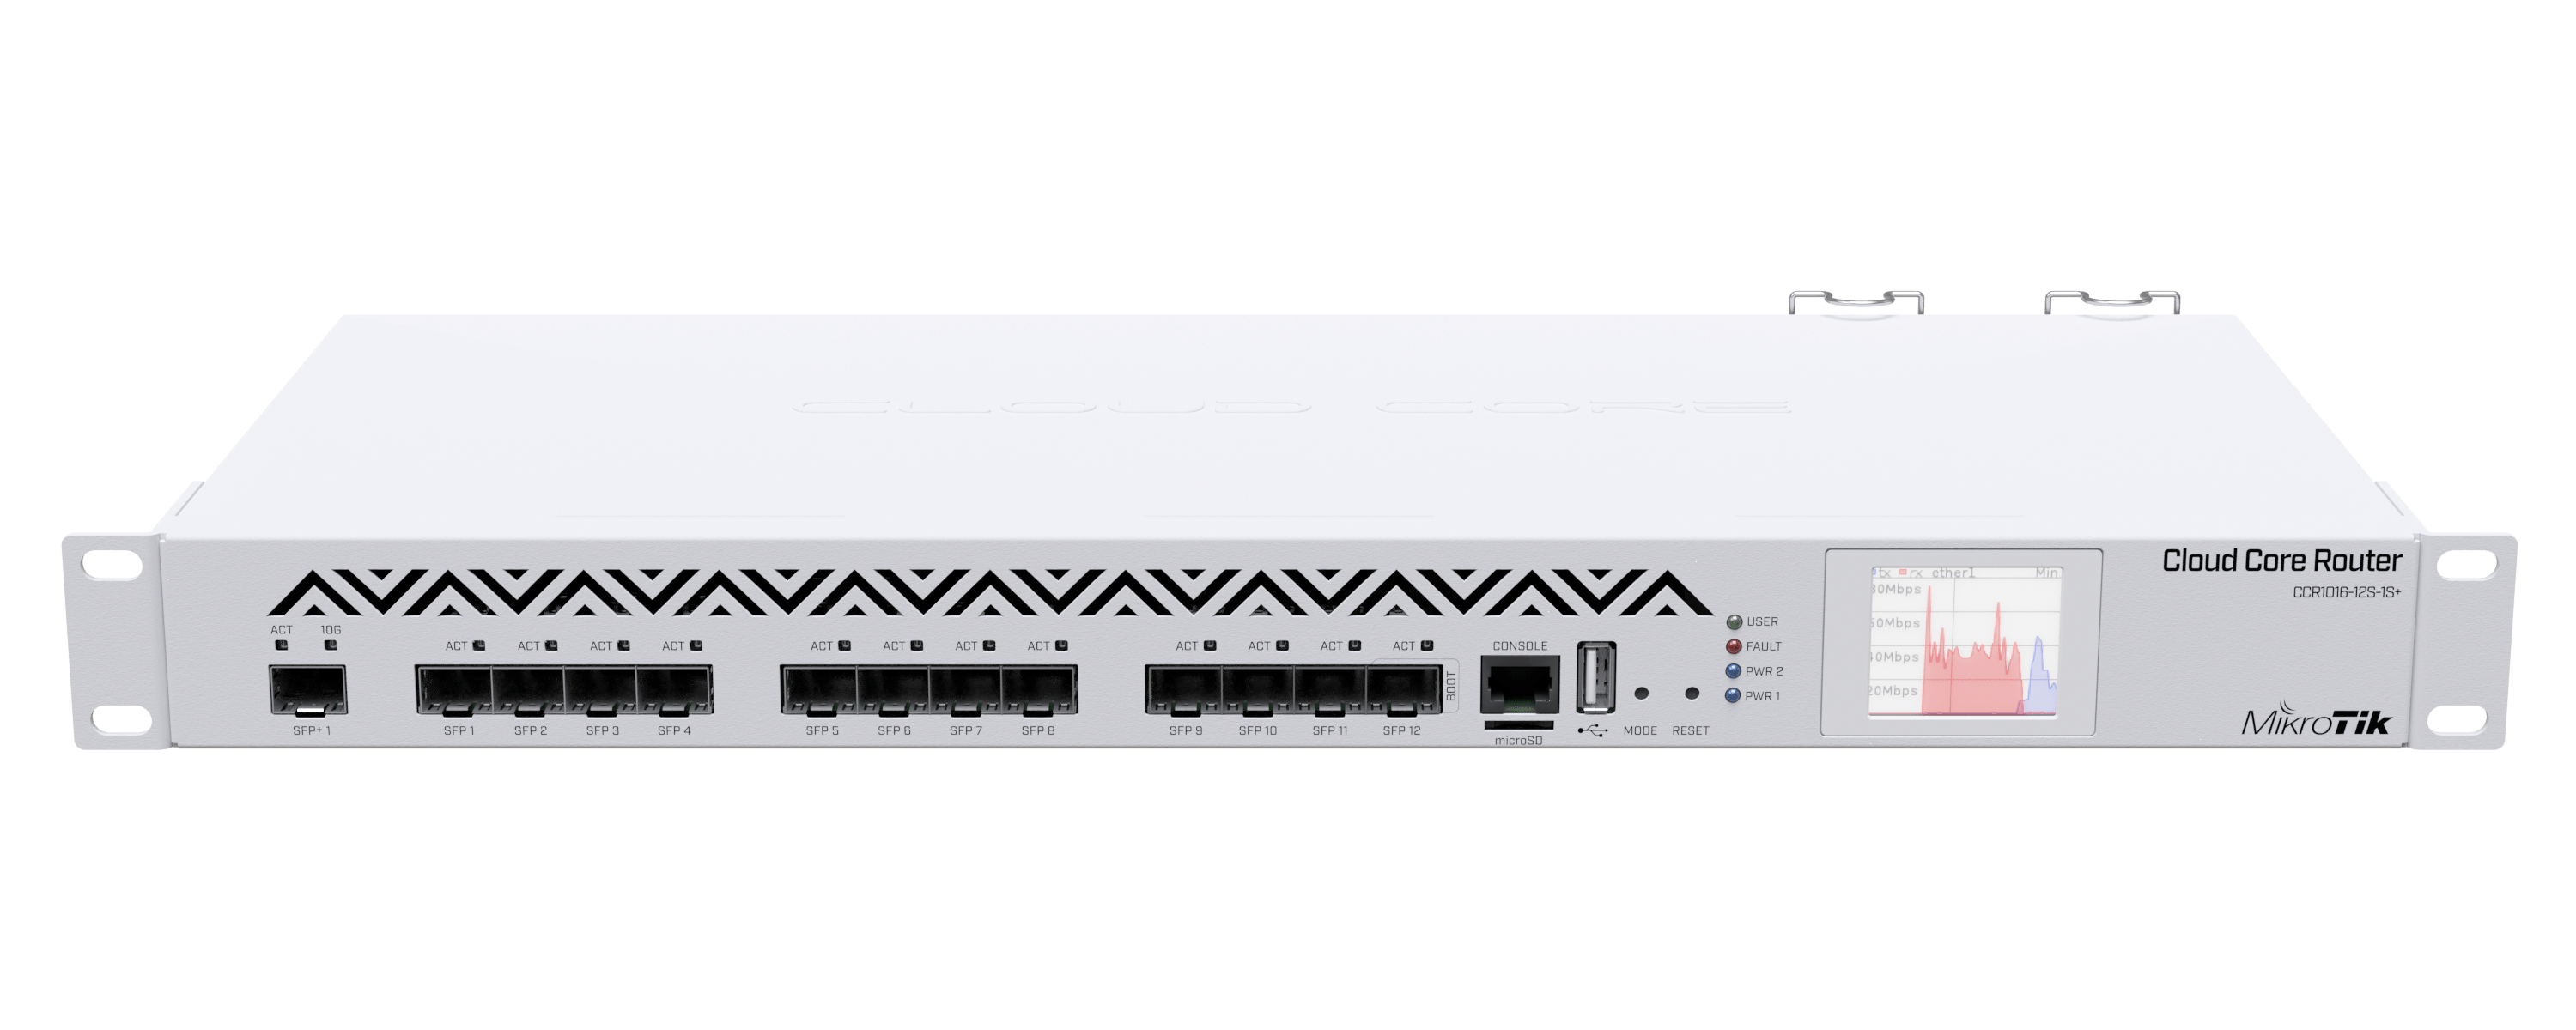 MikroTik Routers and Wireless - Products: CCR1016-12S-1S+